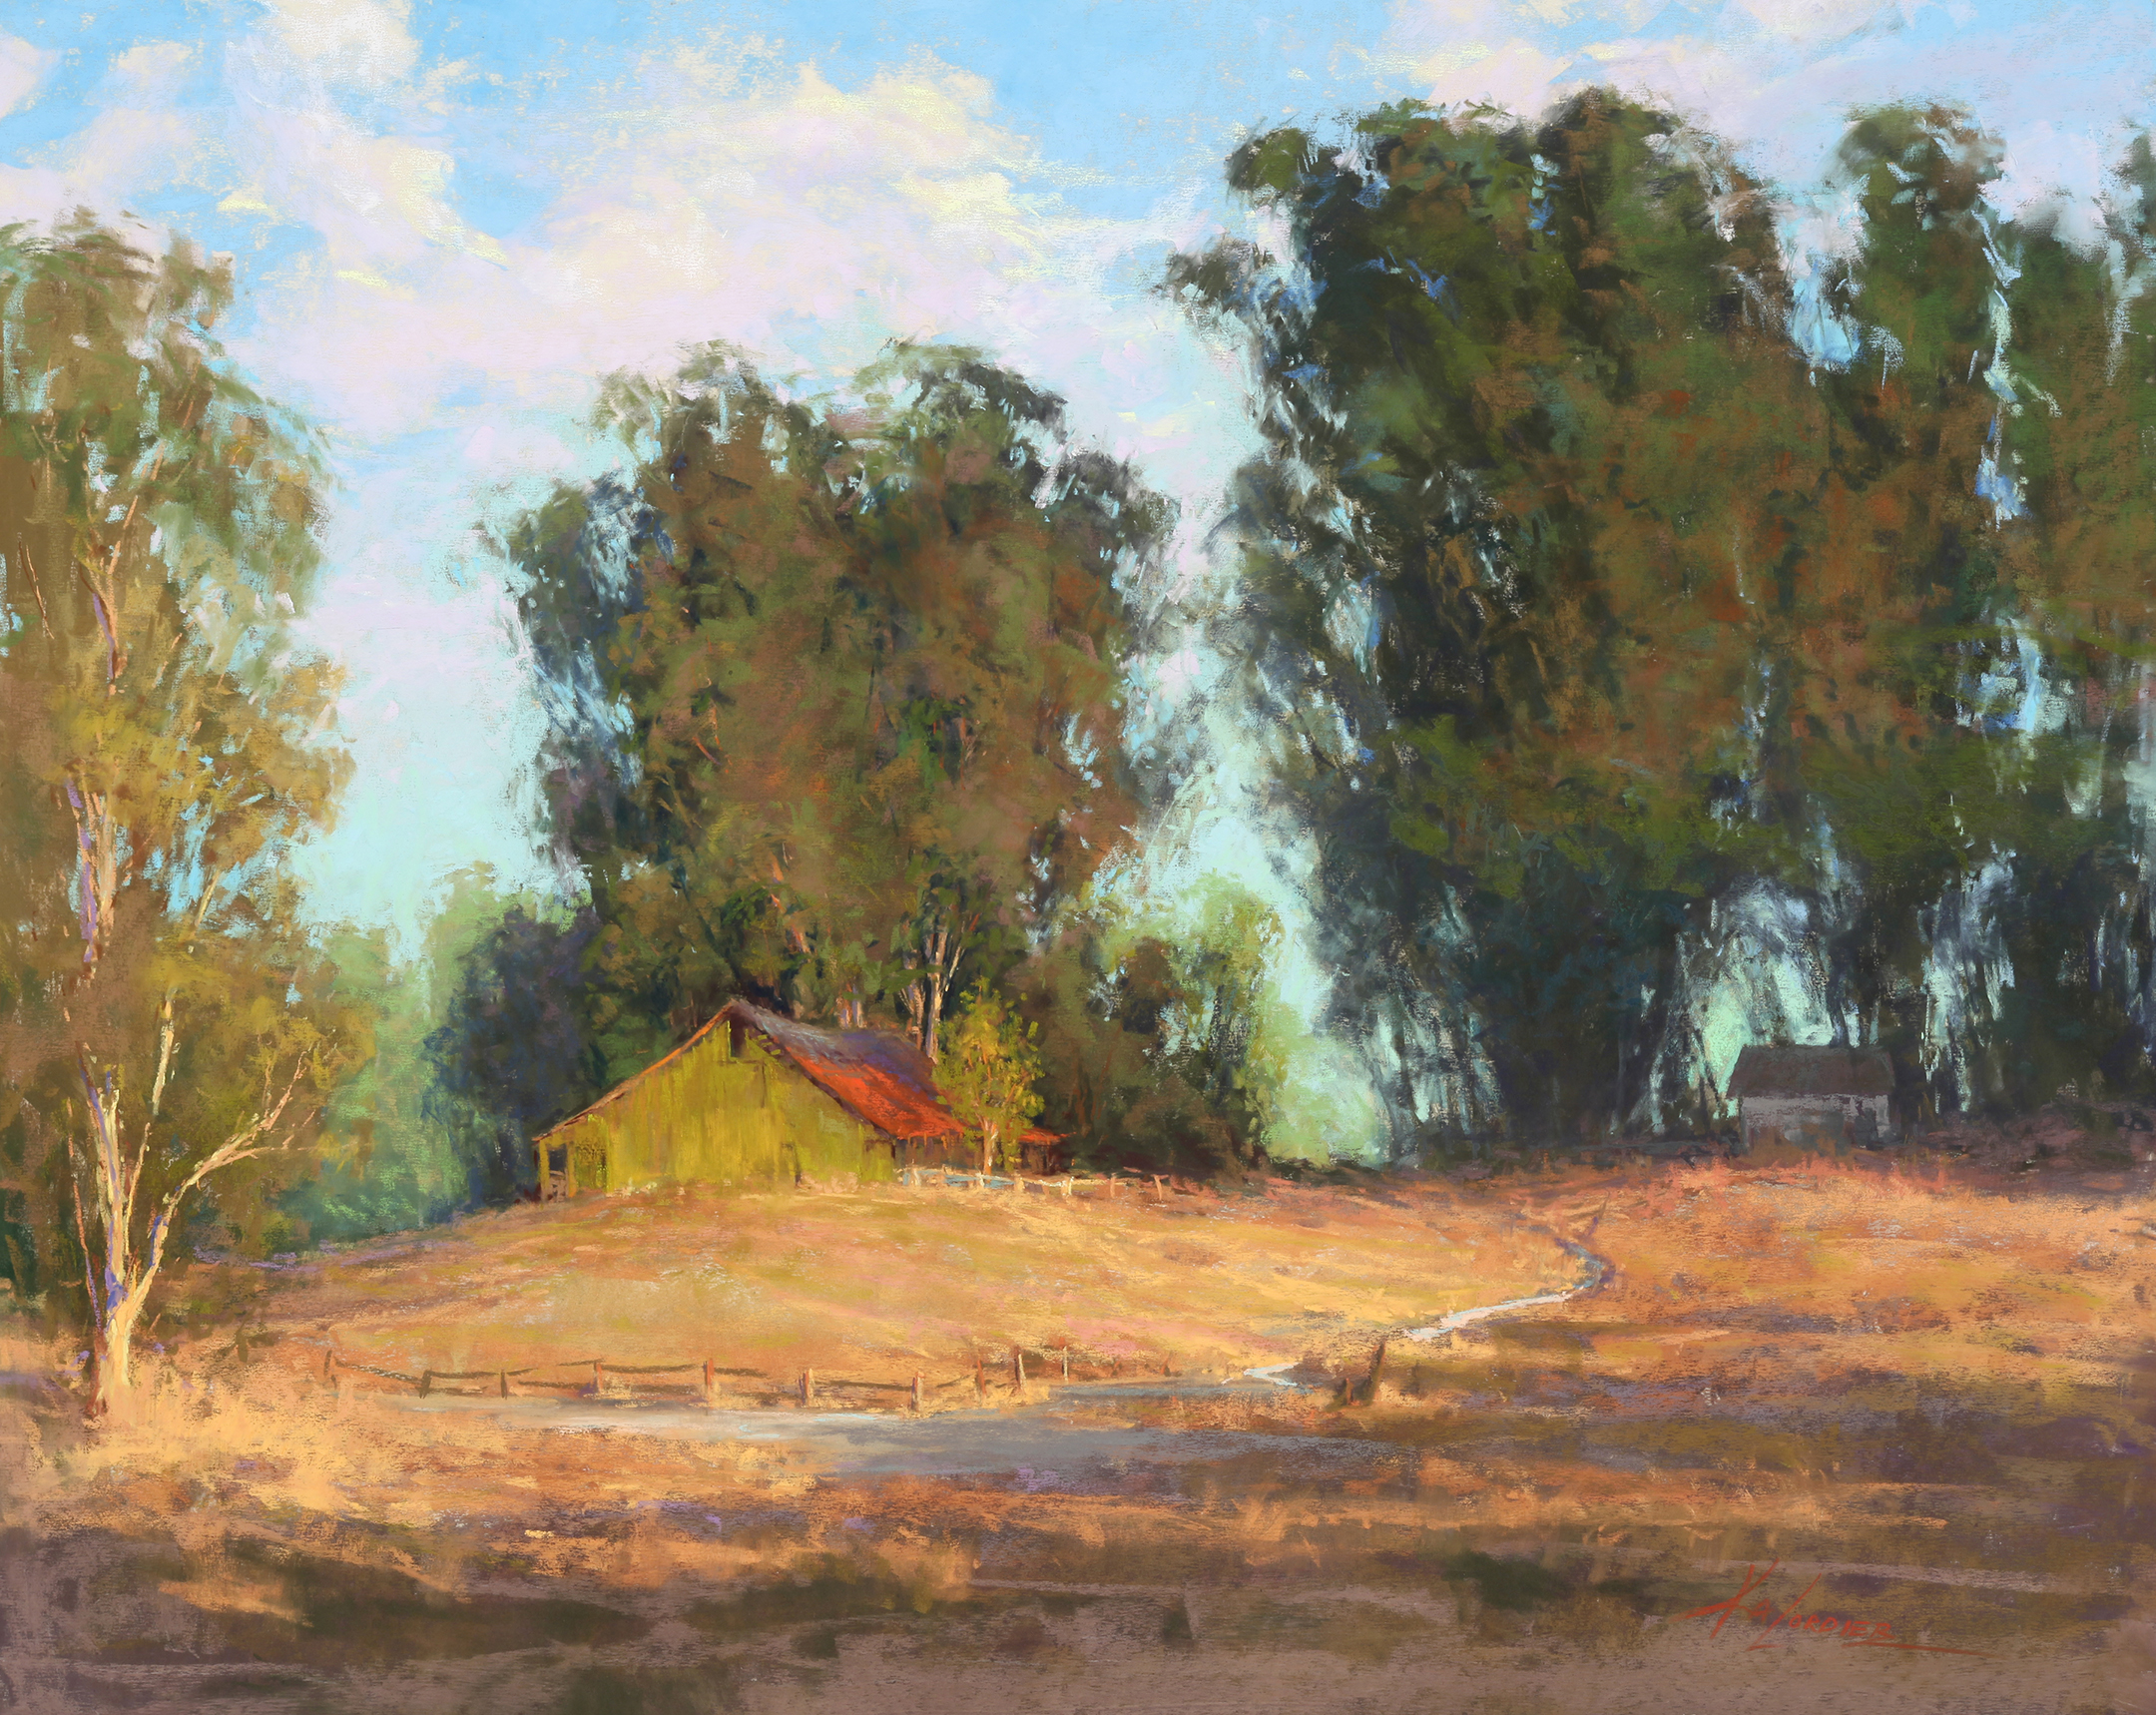 Western scene with barn and trees.